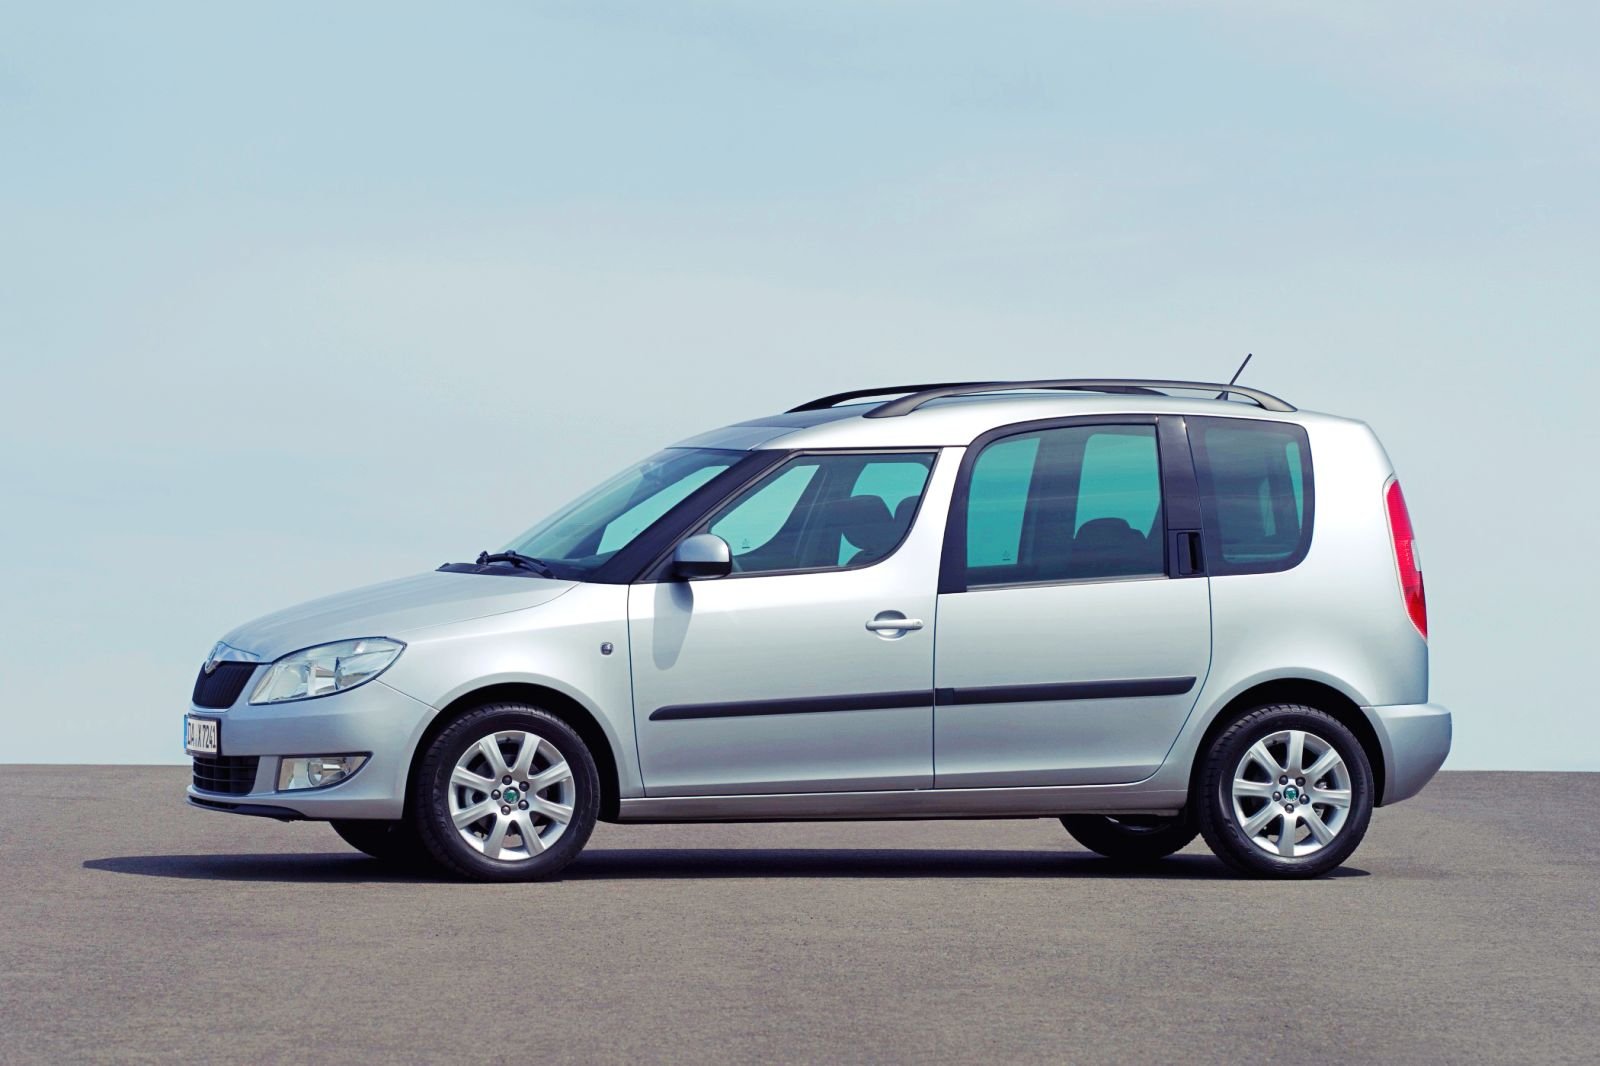 2021 Skoda Roomster Specs and Review